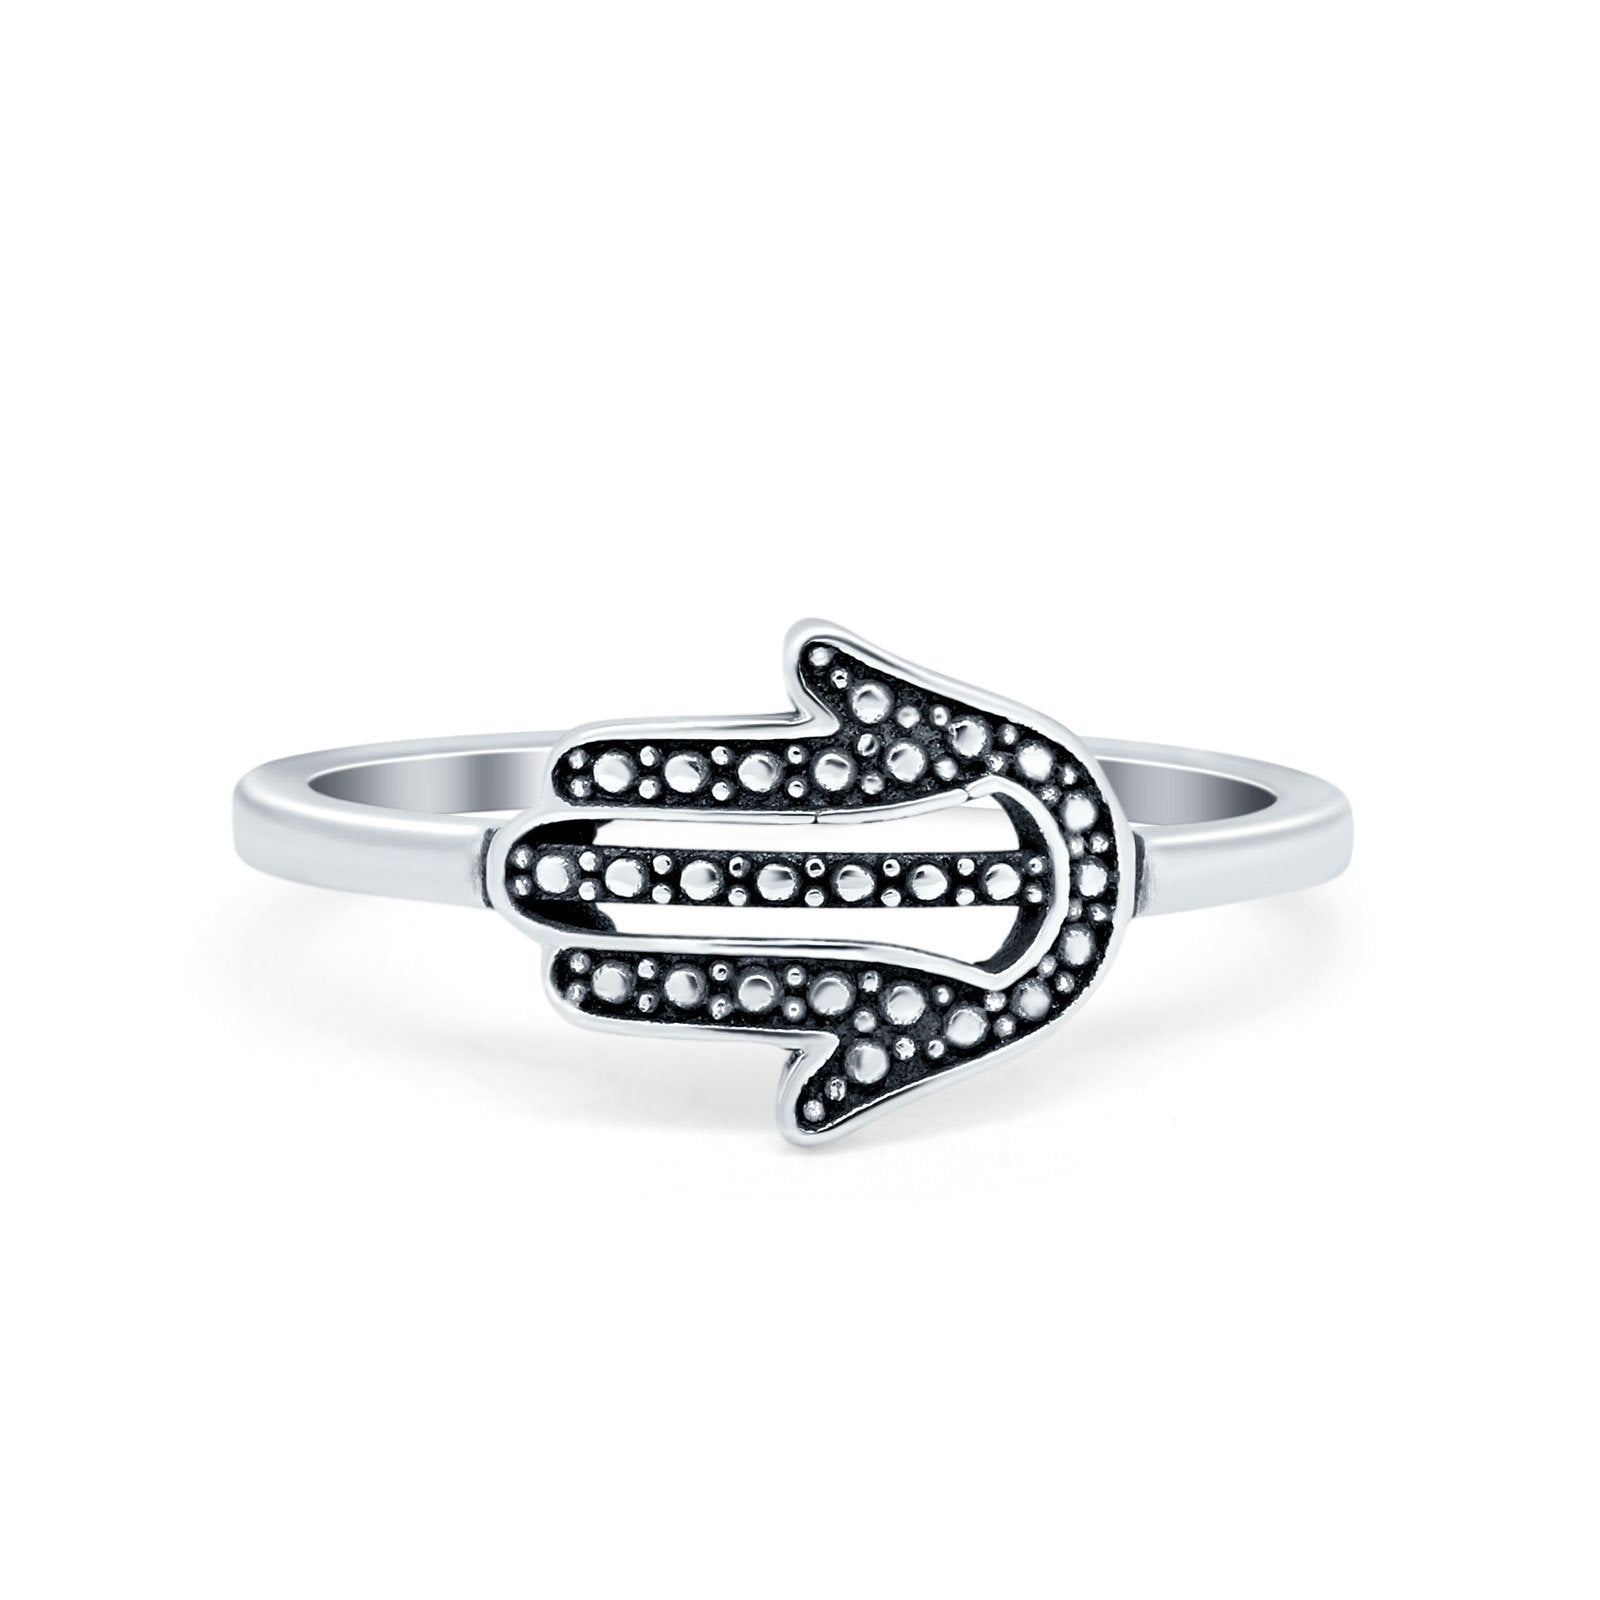 Oxidized Sideways Hamsa Plain Ring Band 925 Sterling Silver